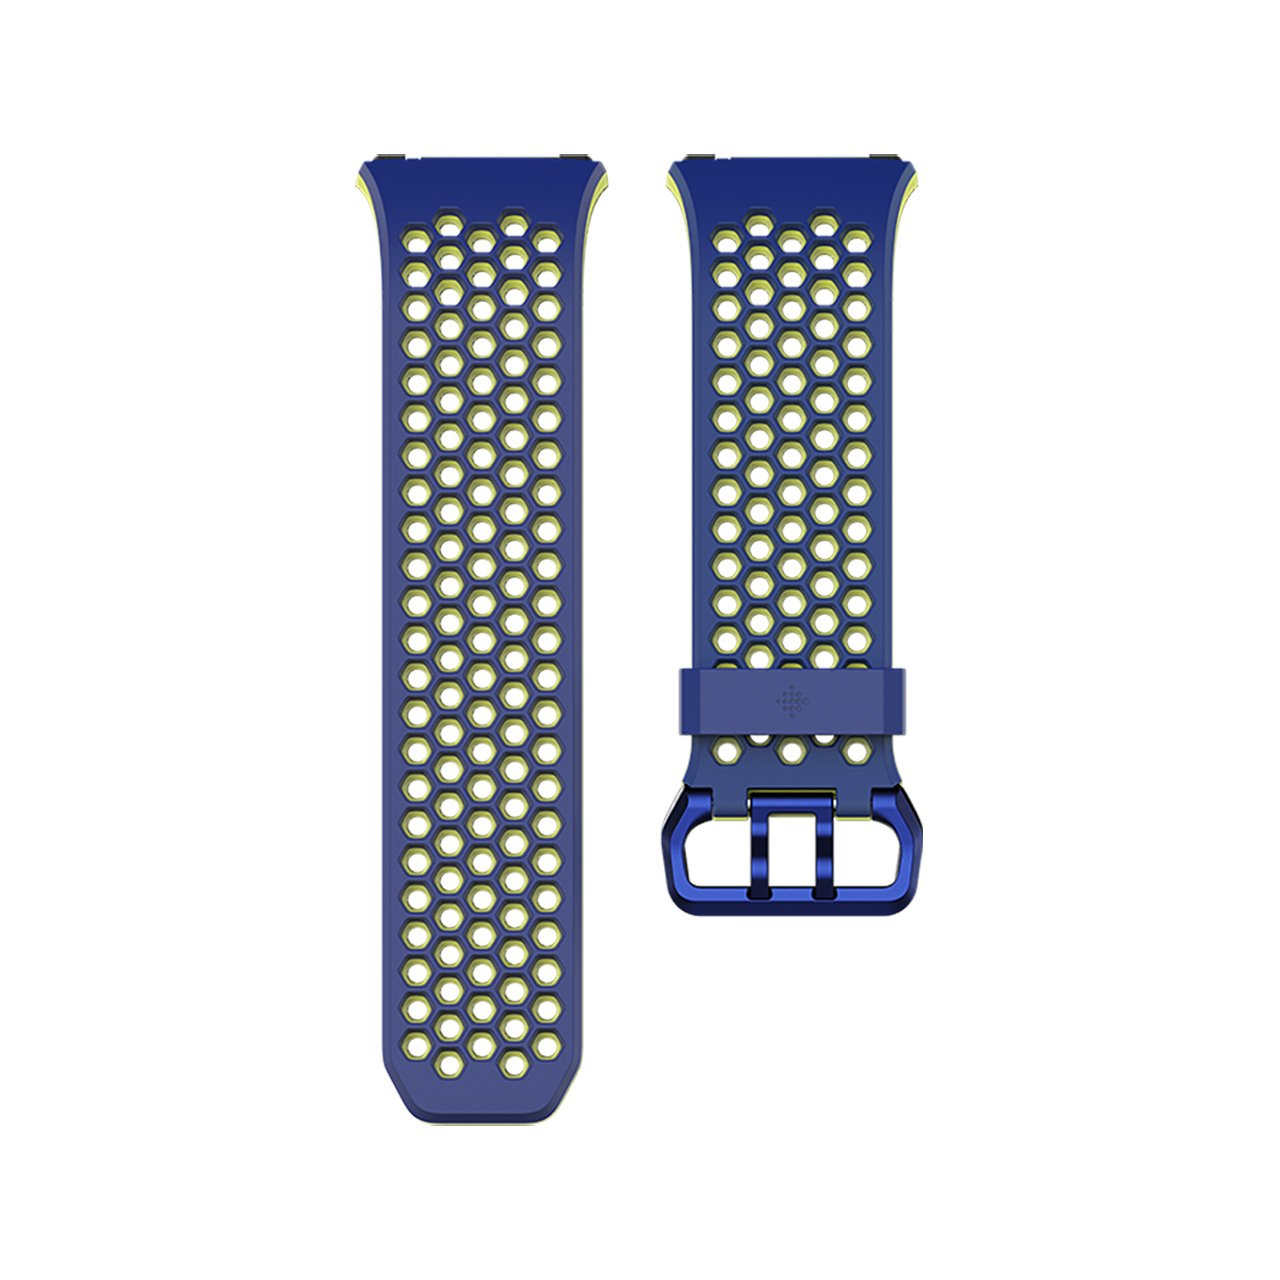 No Tracker QGHXO Band for Fitbit Ionic Soft Silicone Adjustable Replacement Sport Strap Band for Fitbit Ionic Smartwatch